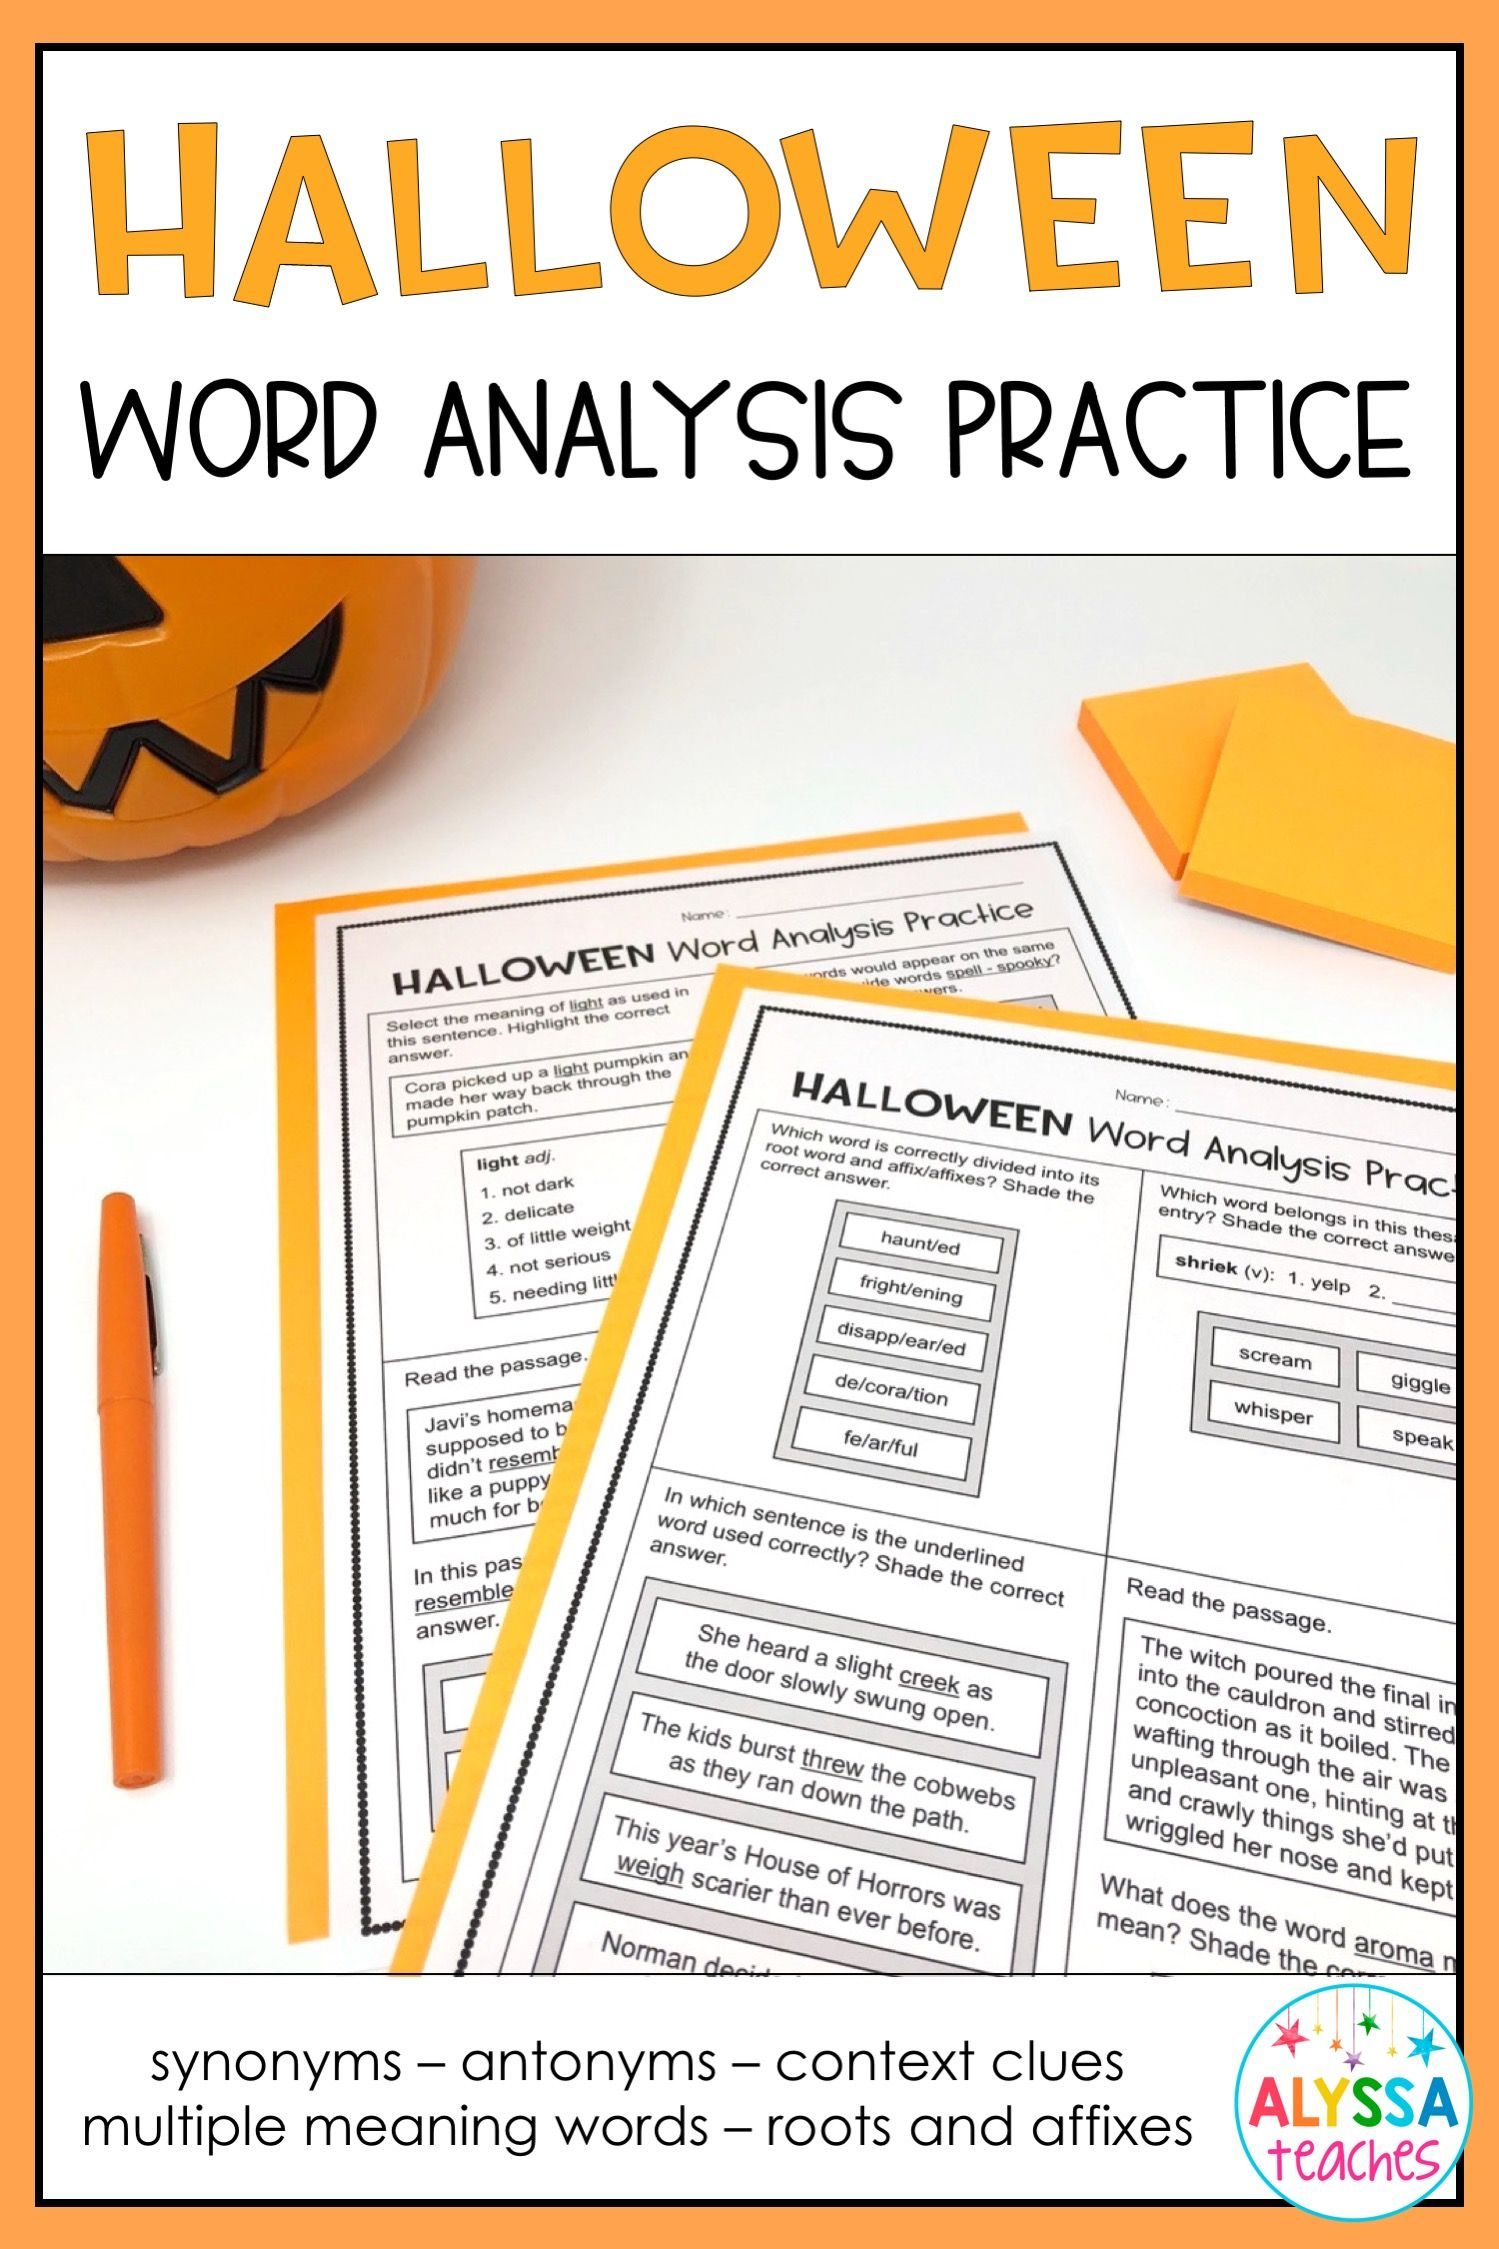 Halloween Wordysis Worksheets Sol 4 4